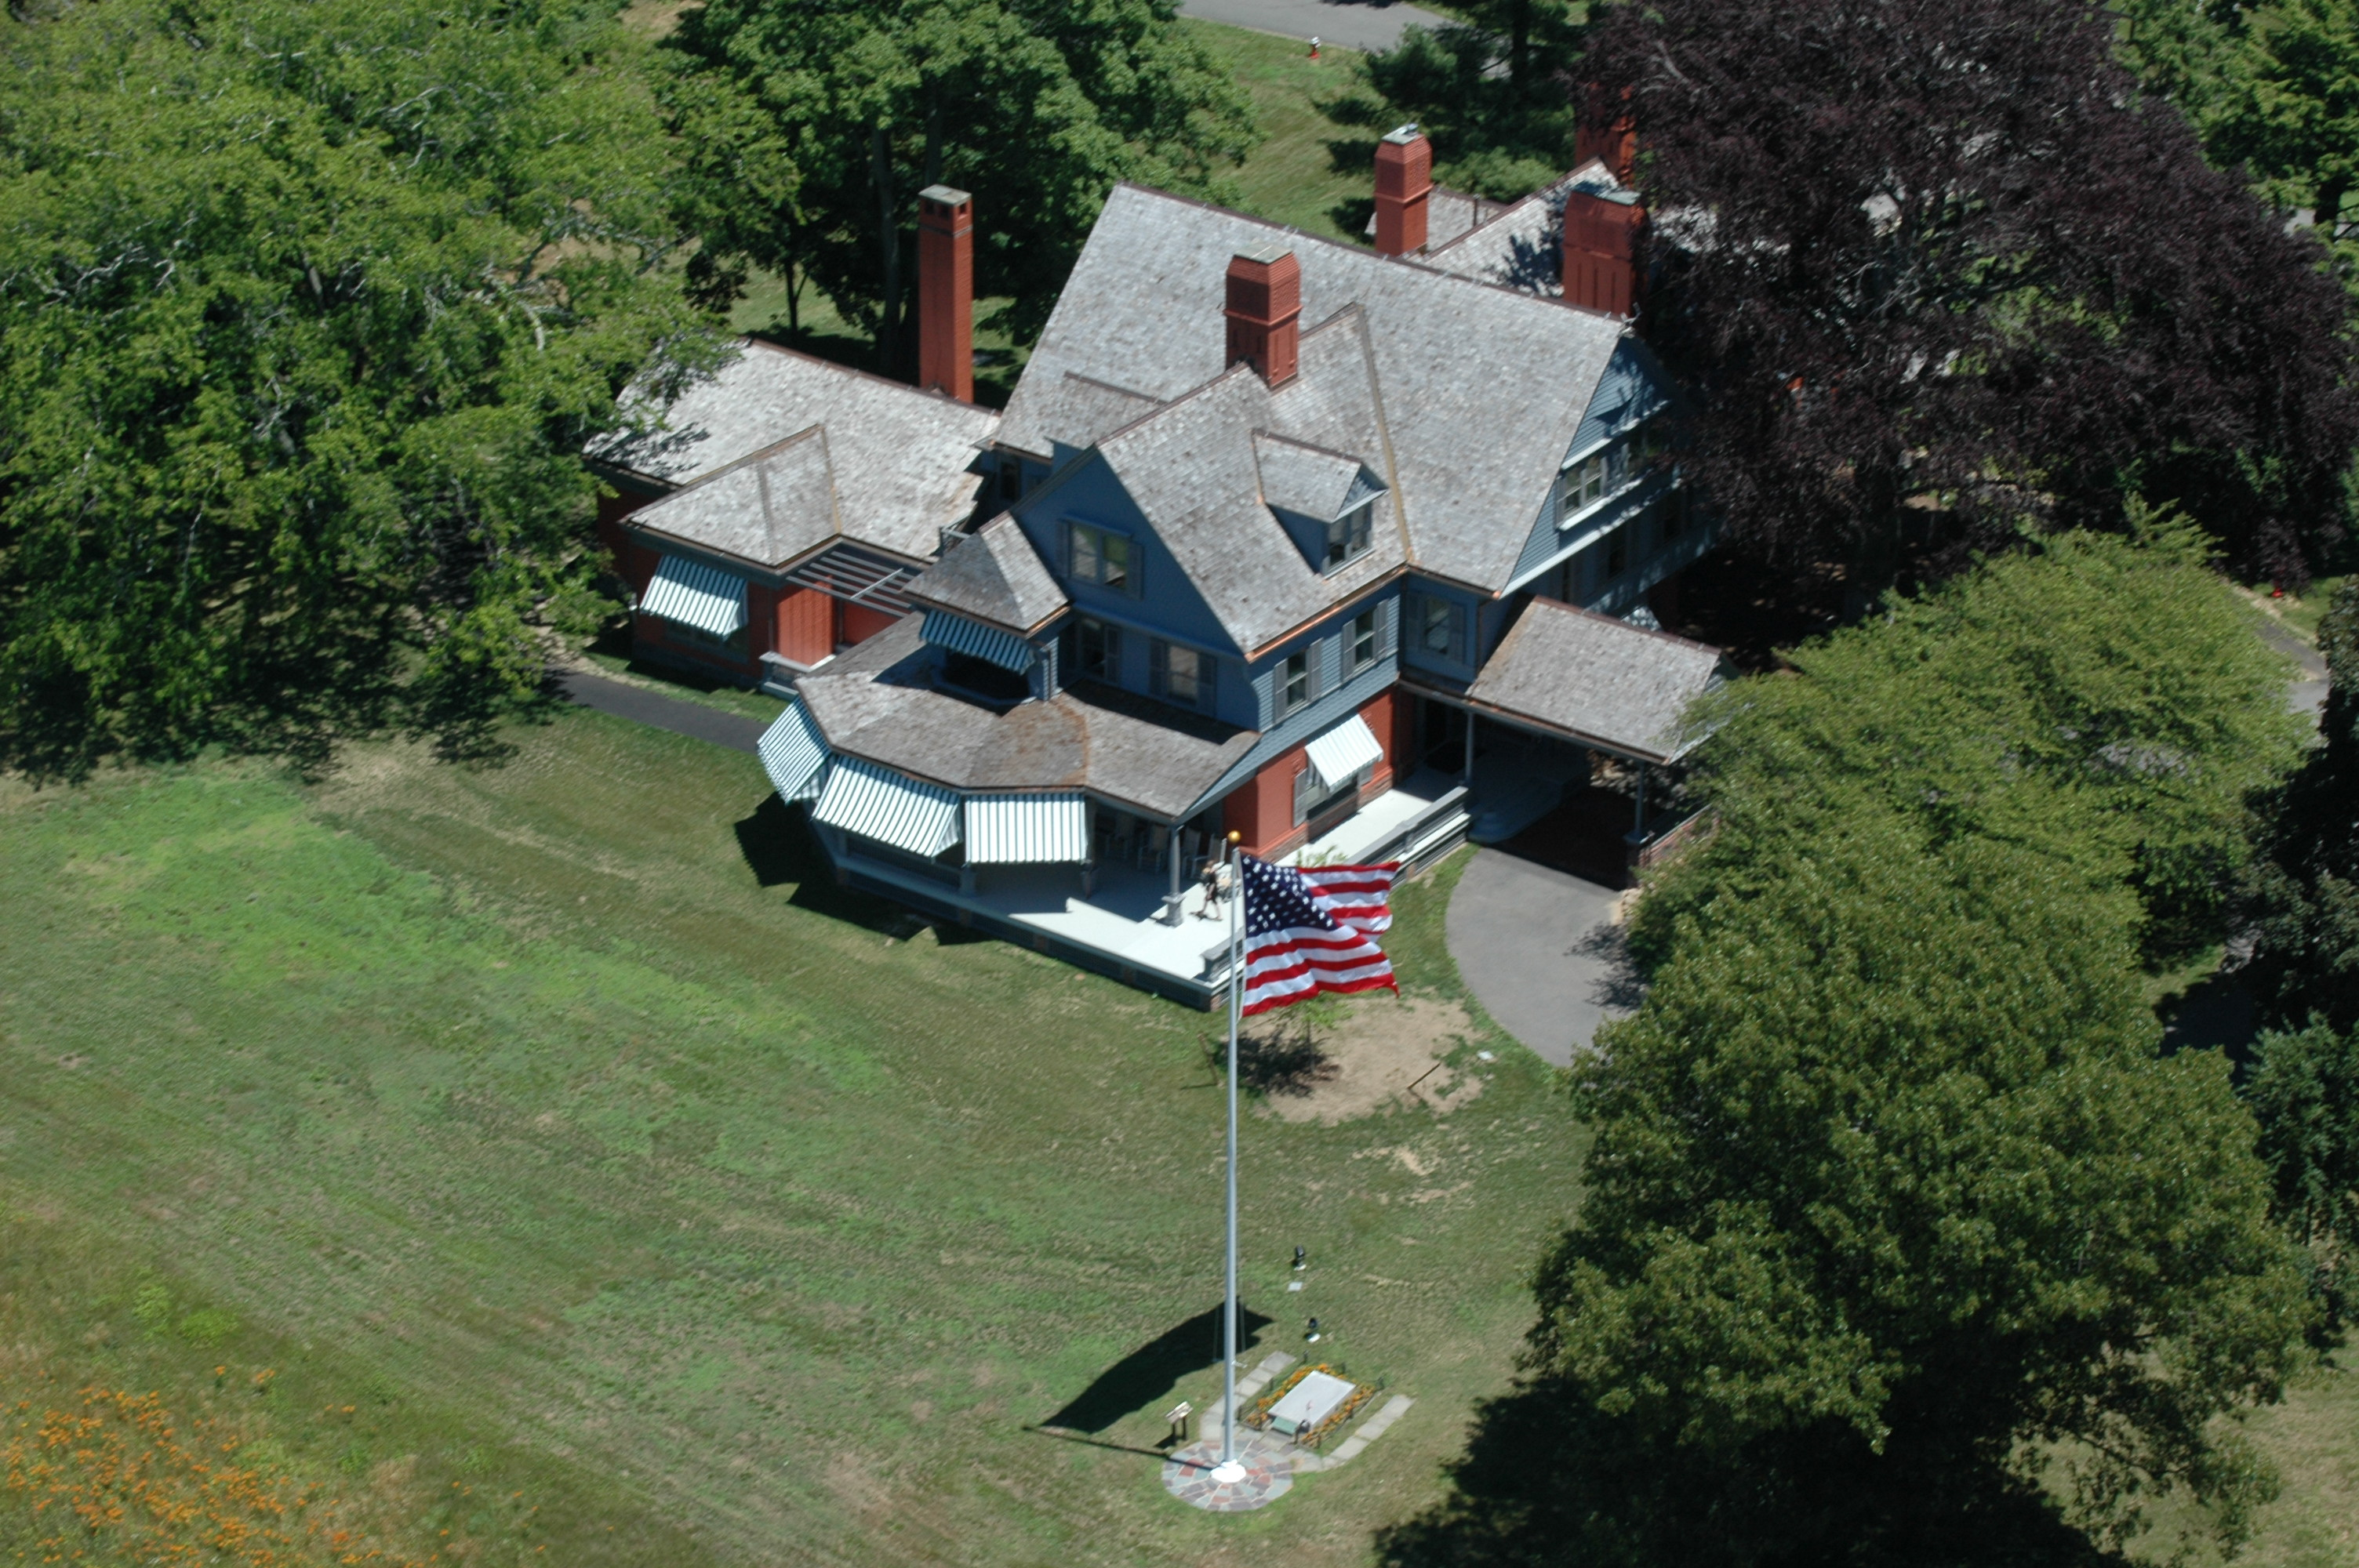 Ariel of Theodore Roosevelt House. image: sagamore hill national historic site